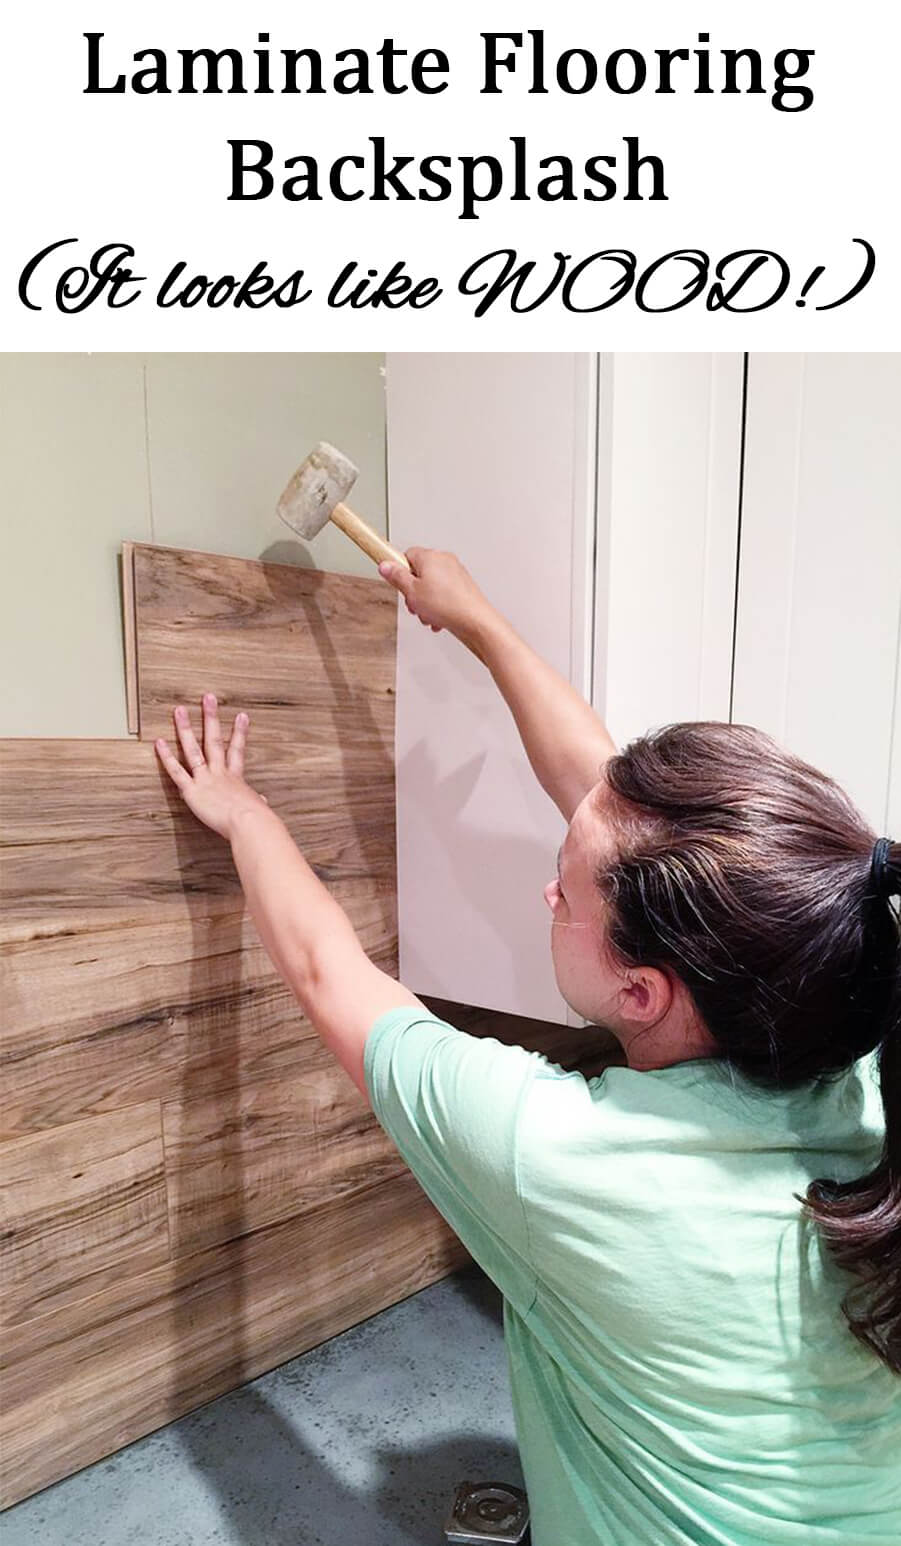 Rethink Laminate Wood for the Kitchen